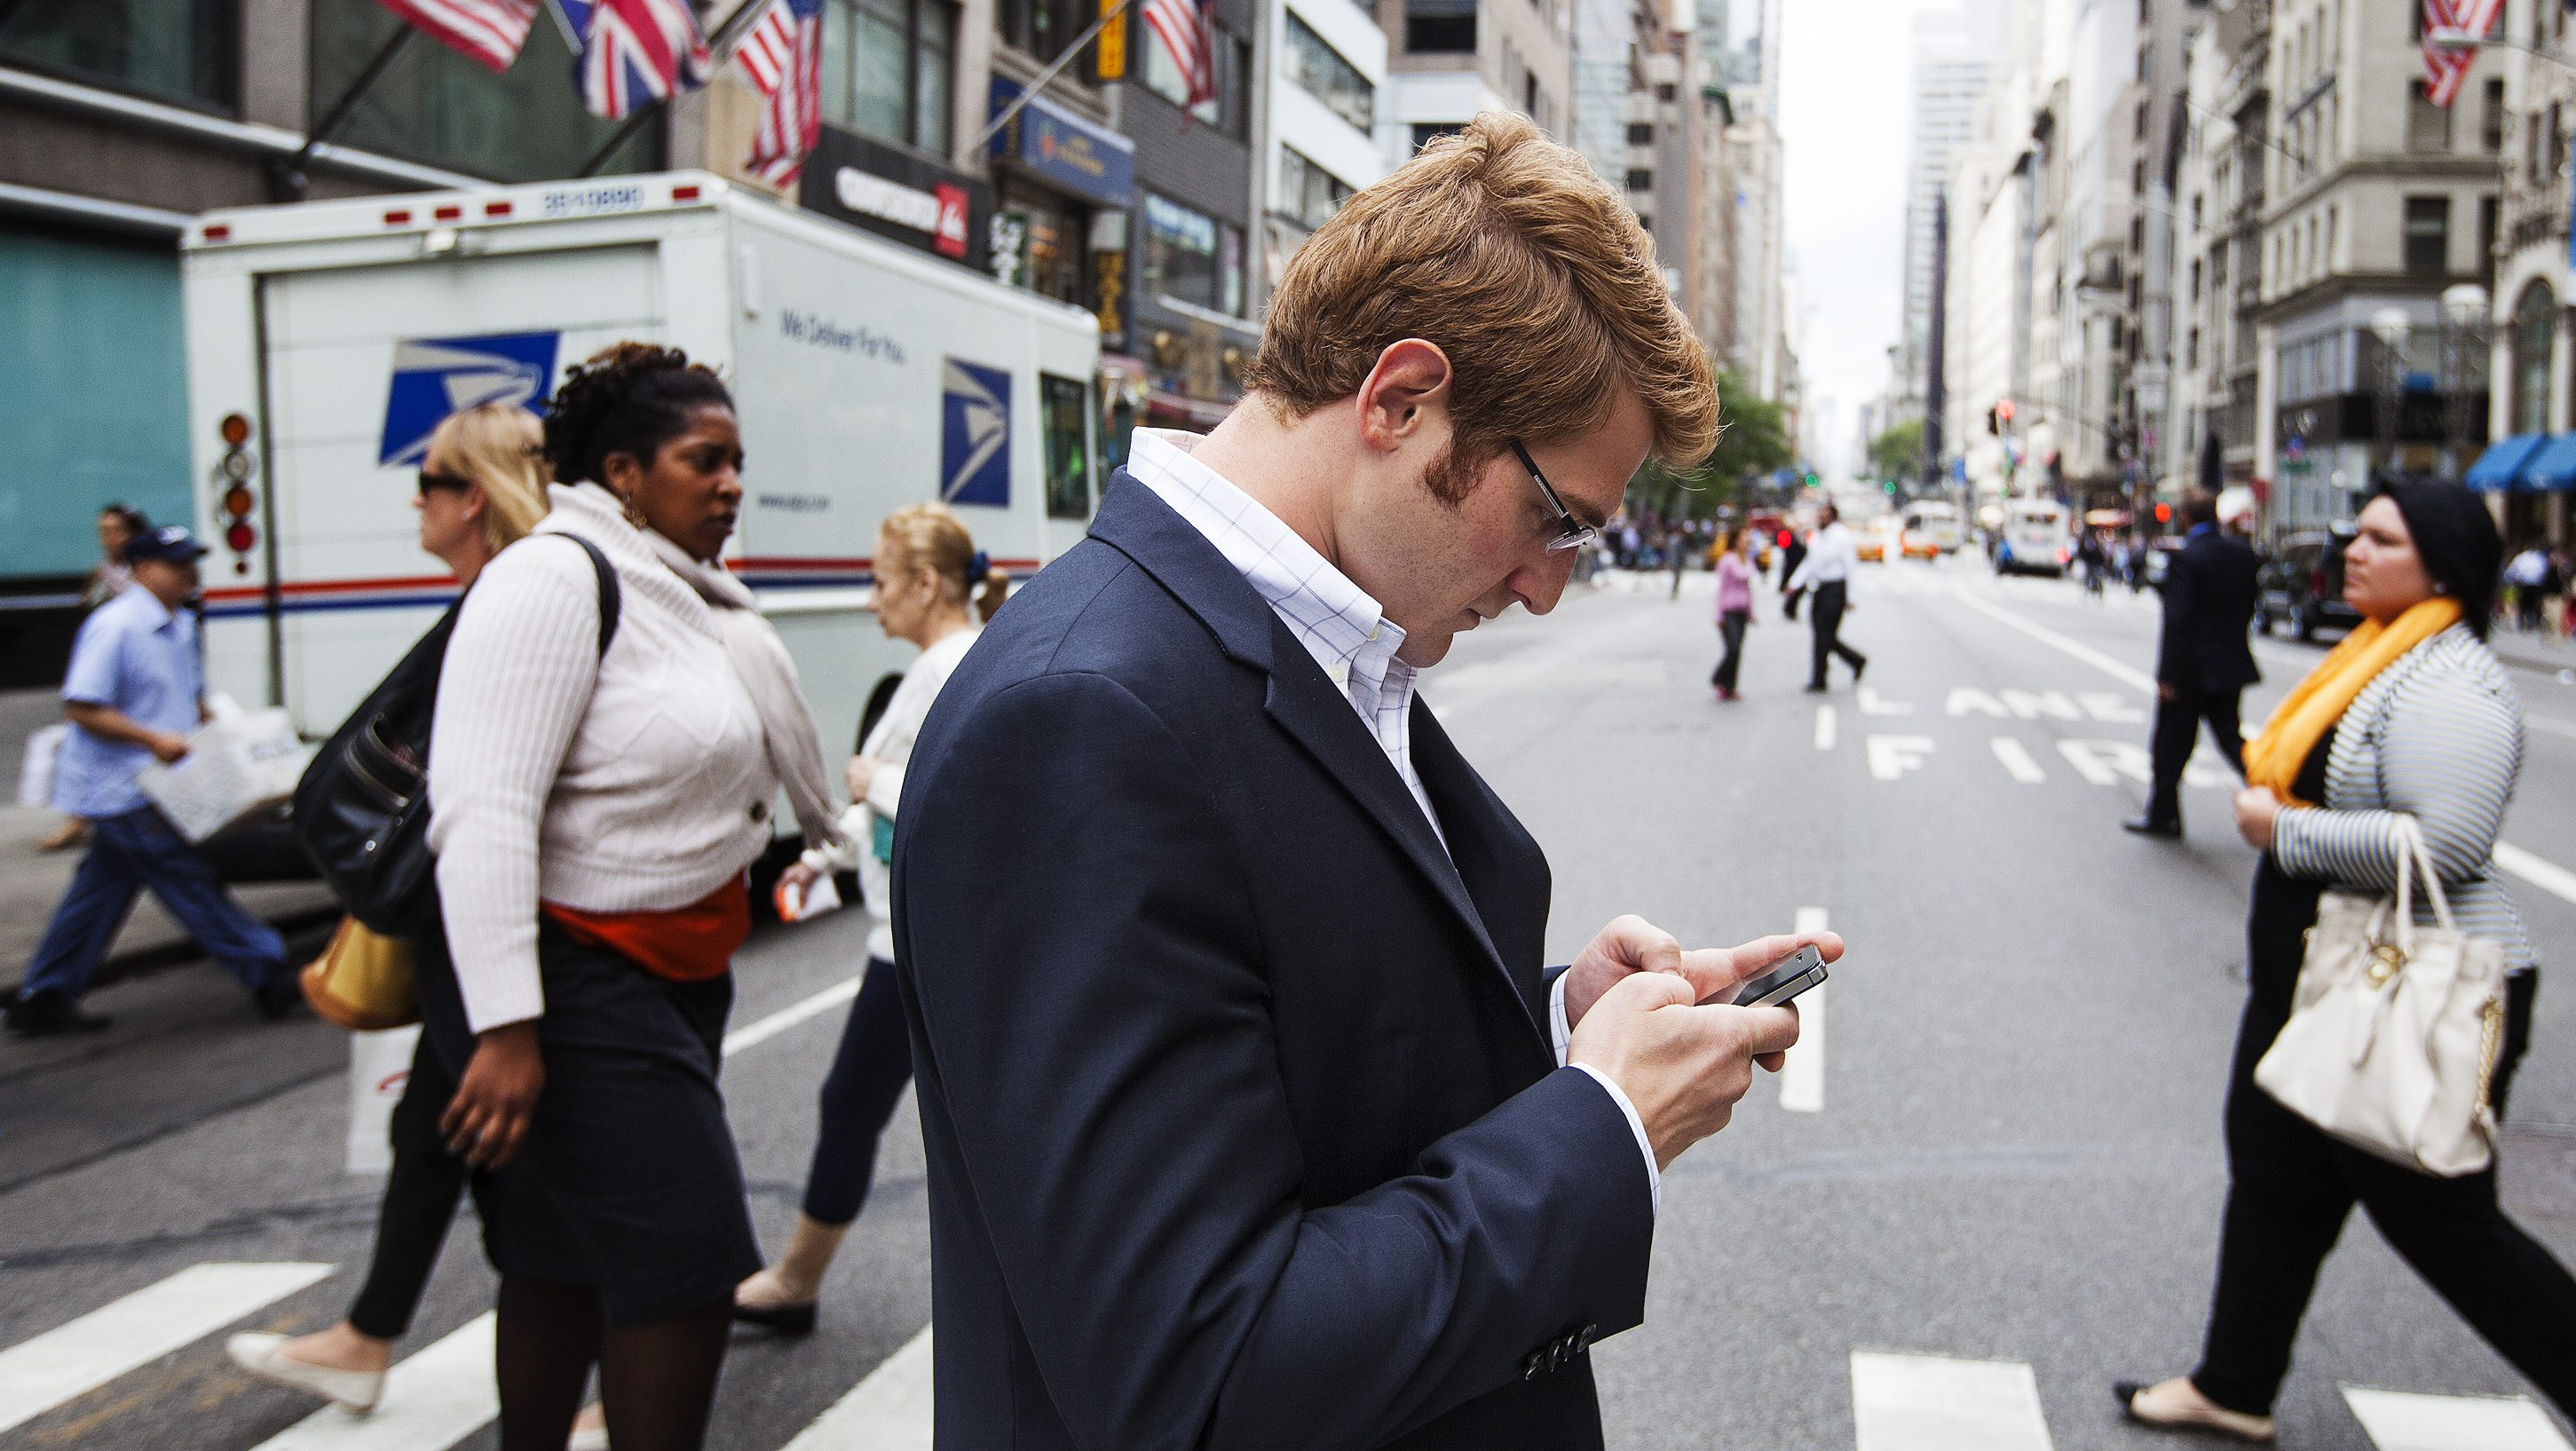 A man uses his Apple iPhone while walking across 5th Avenue in New York